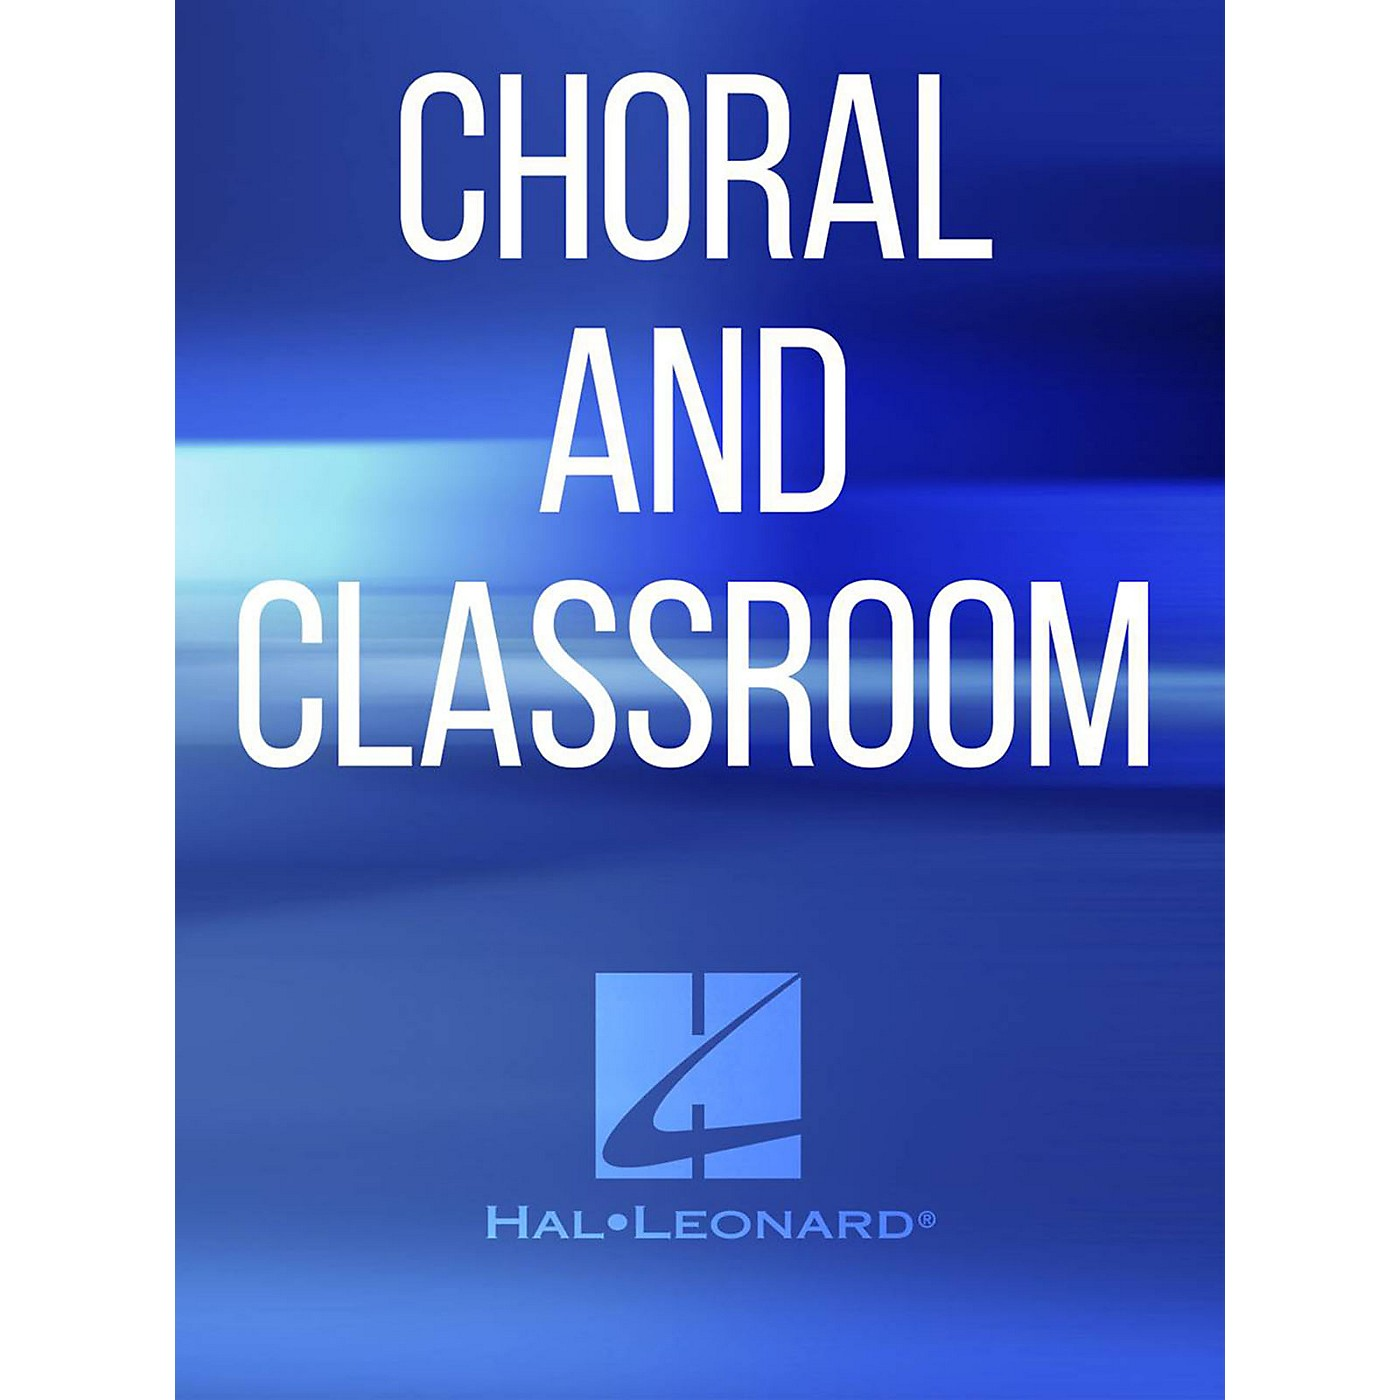 Hal Leonard Gloria in Excelsis Deo Organ Composed by Richard Slater thumbnail